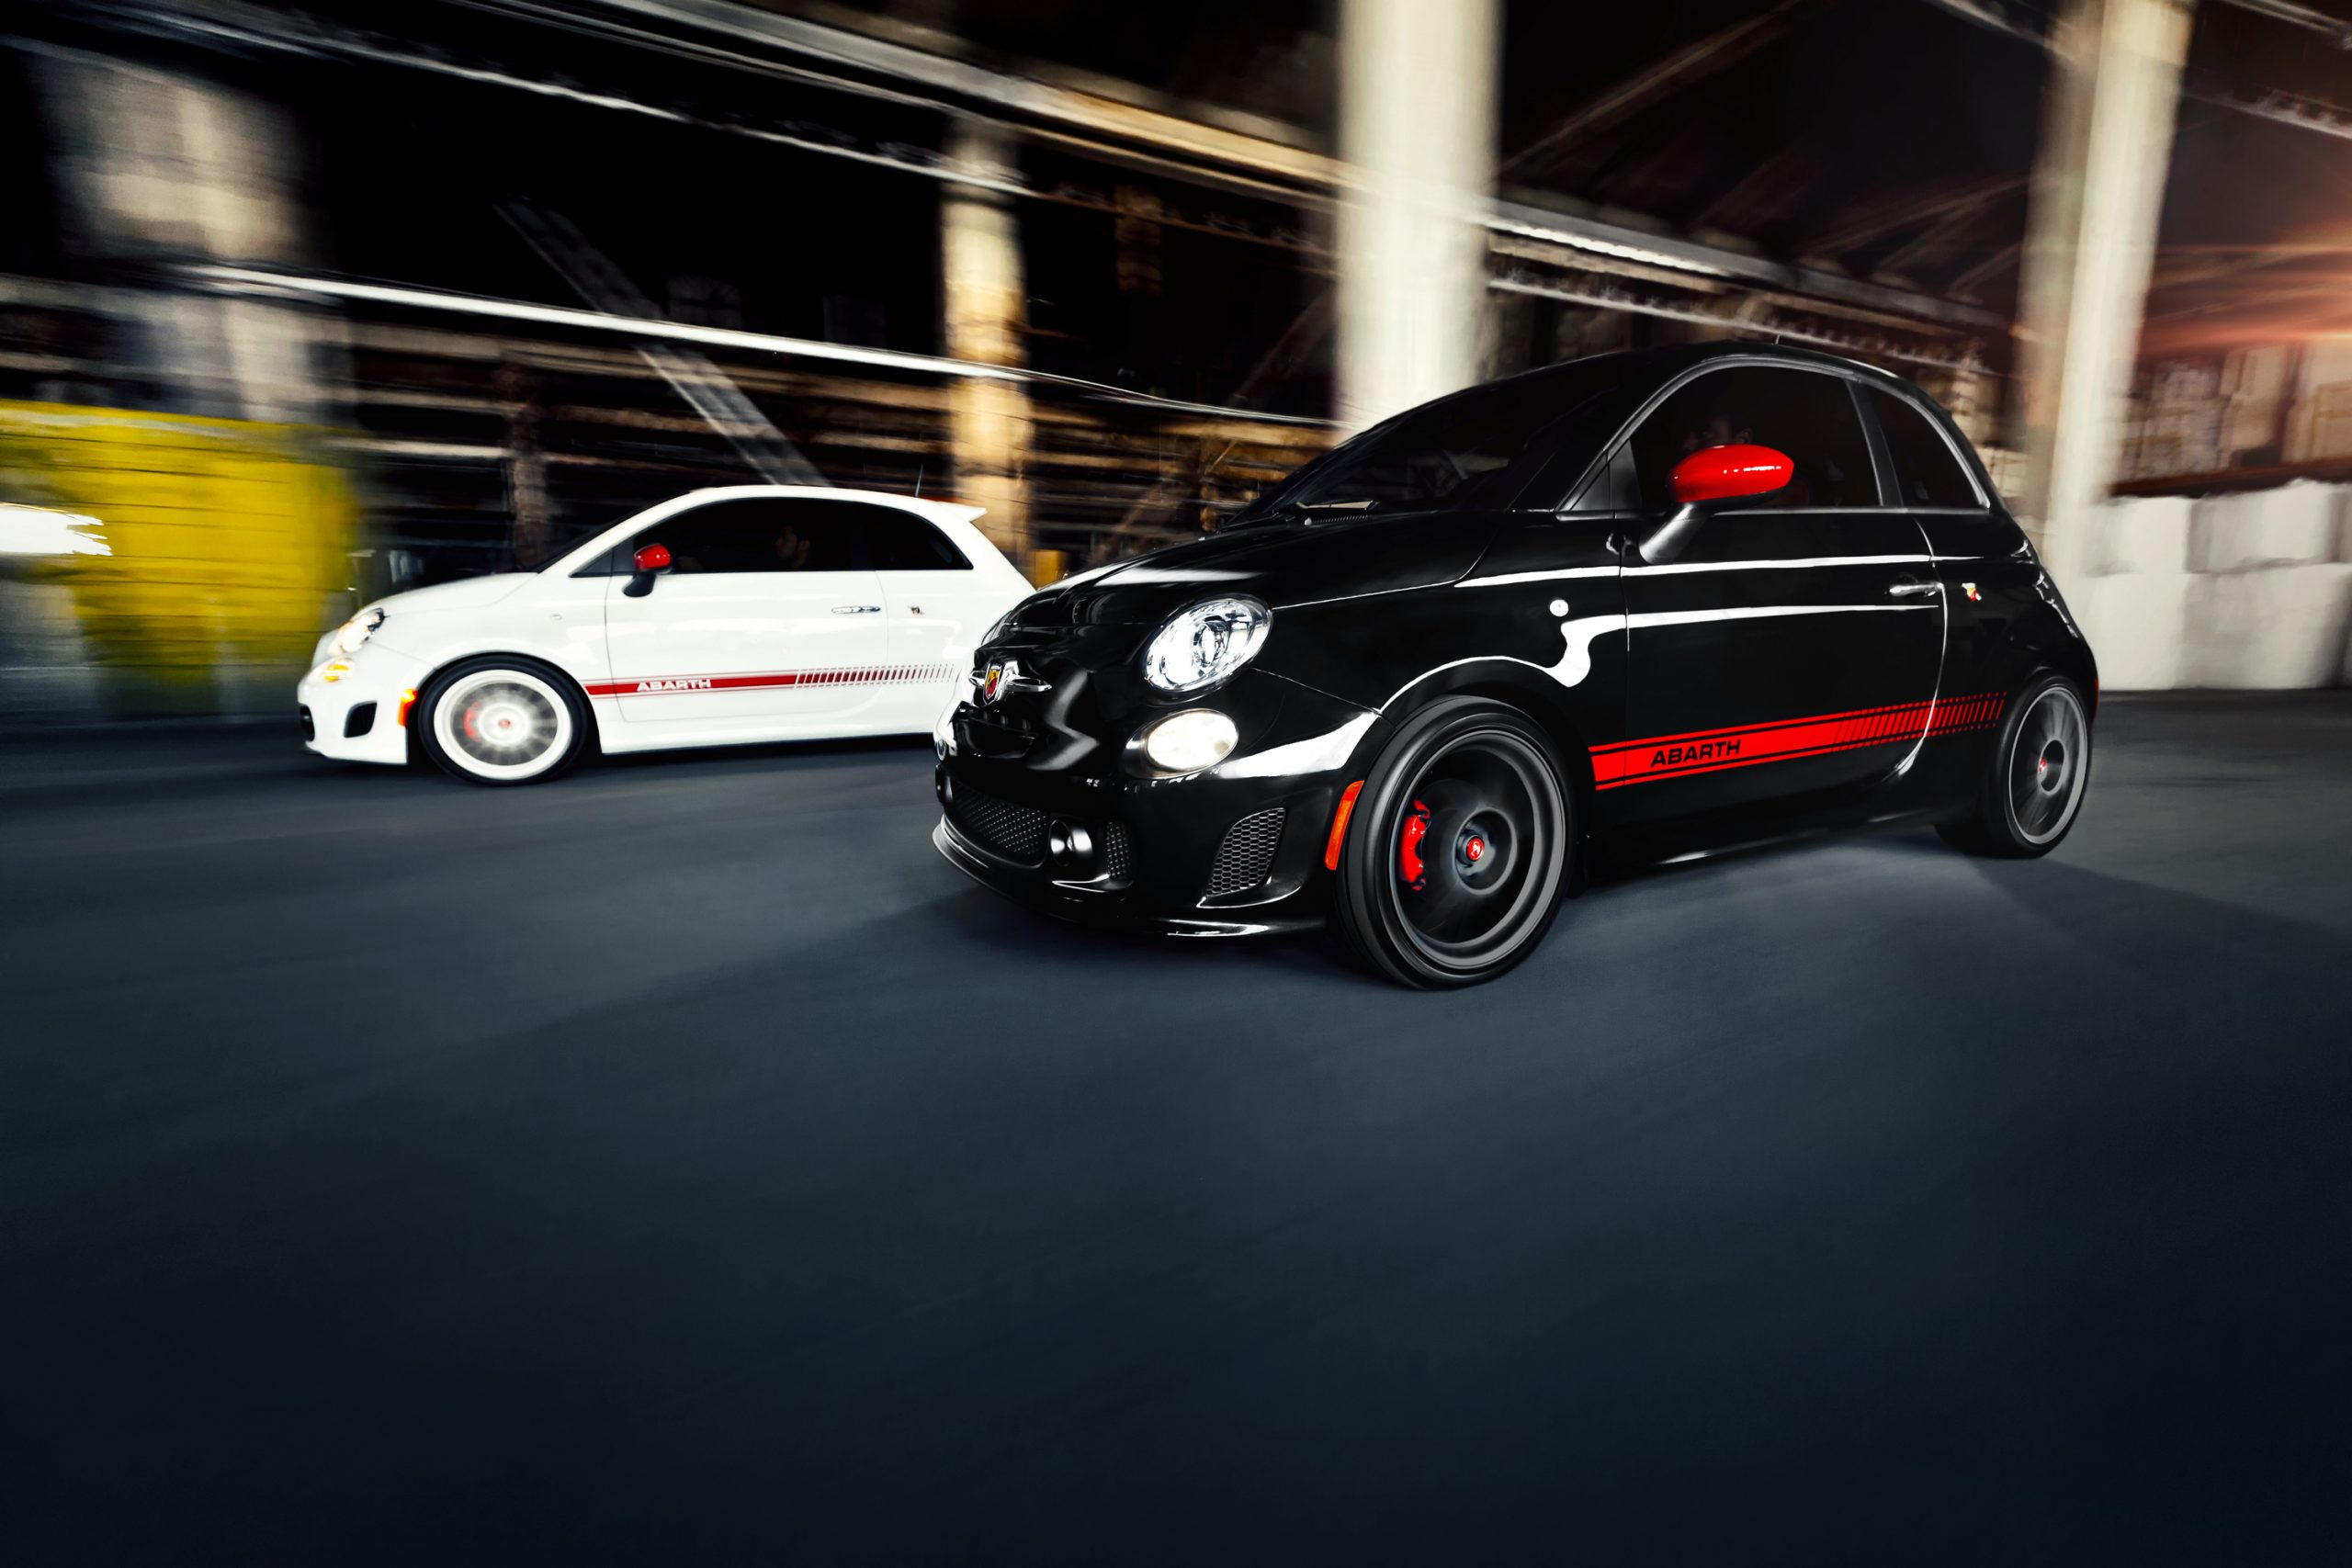 Velocità On The Cheap: 2012 Fiat 500 Abarth Priced At Just $22,000